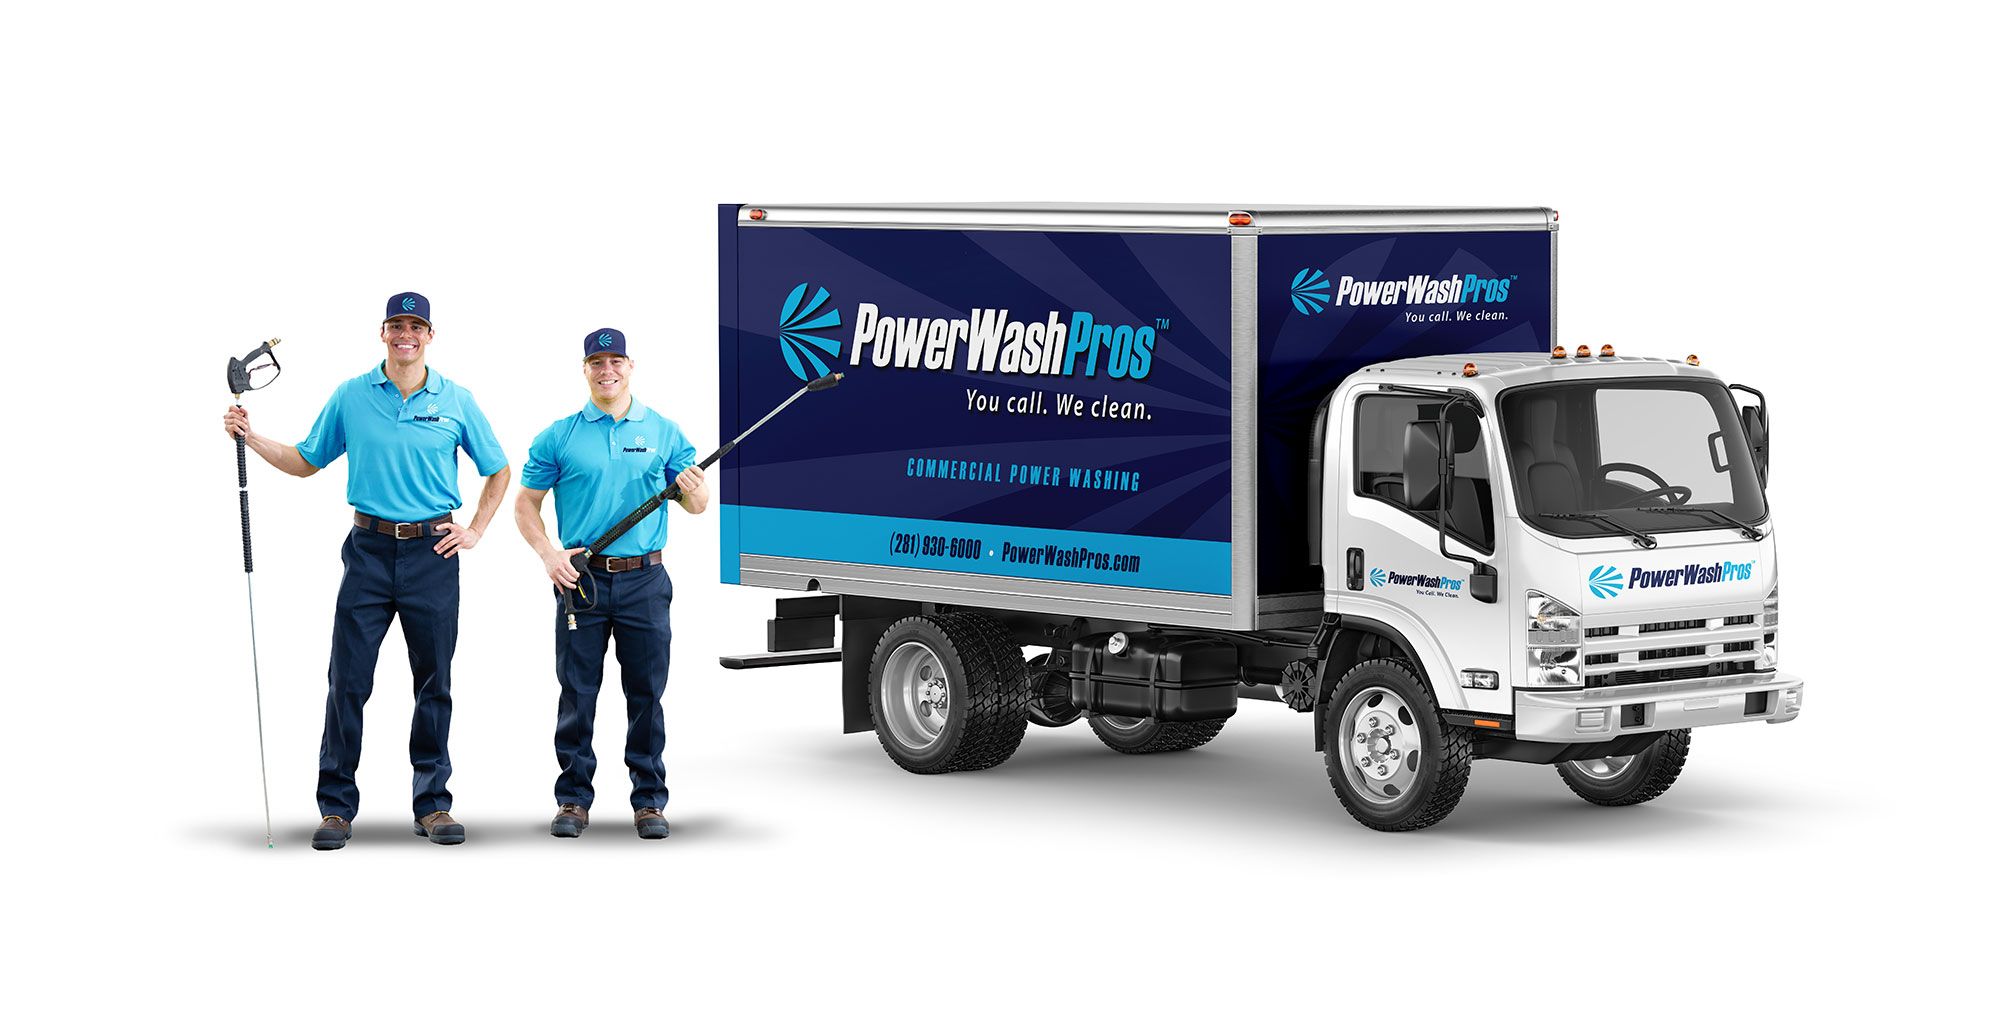 PWP Branding Uniform & Truck Wrap